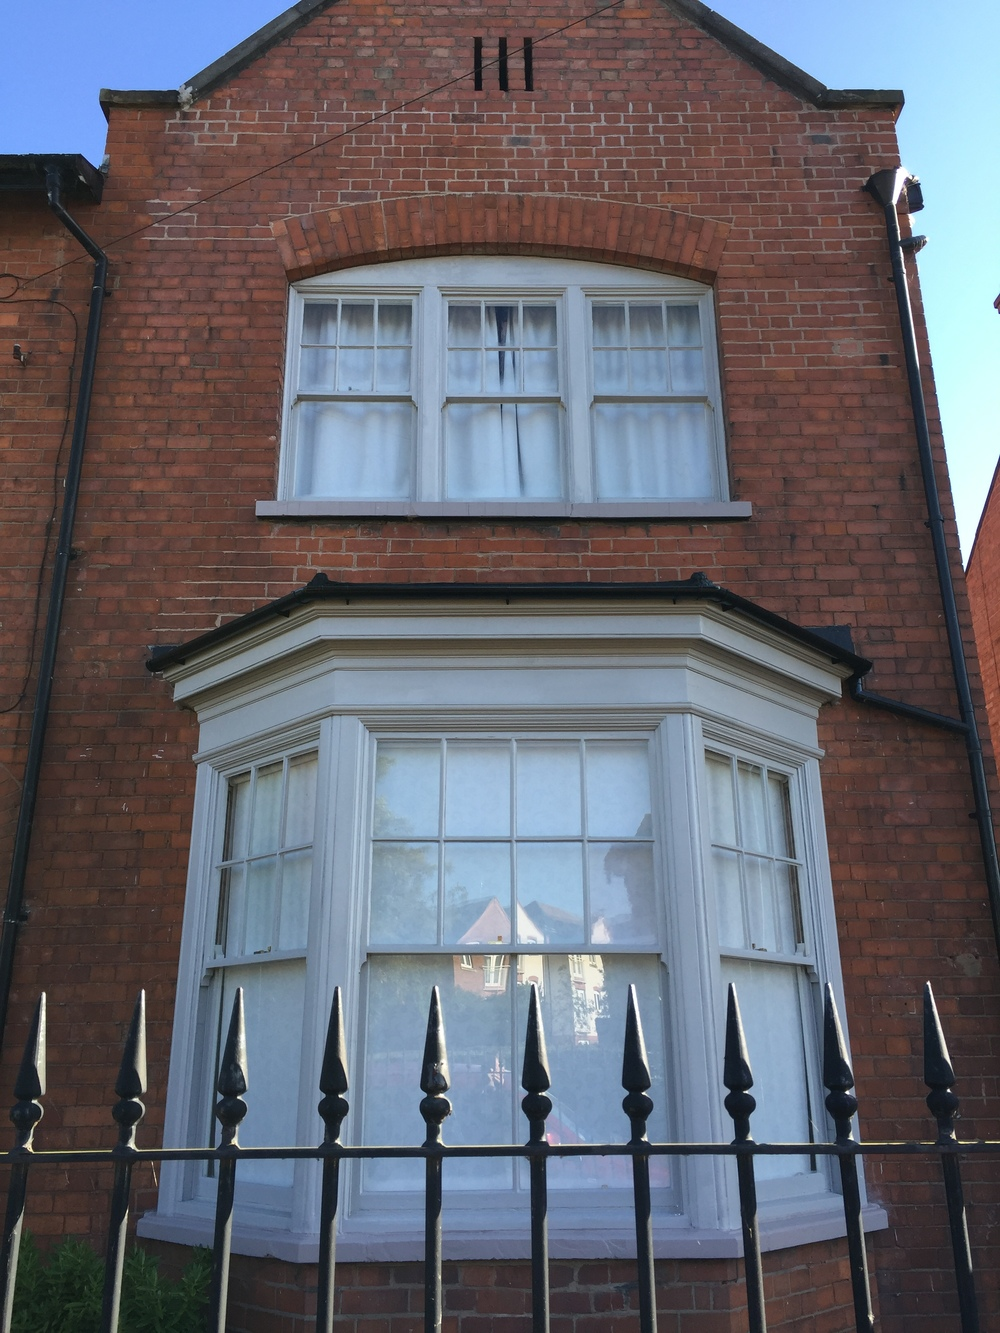 8 over 1 sash windows with condensation problems